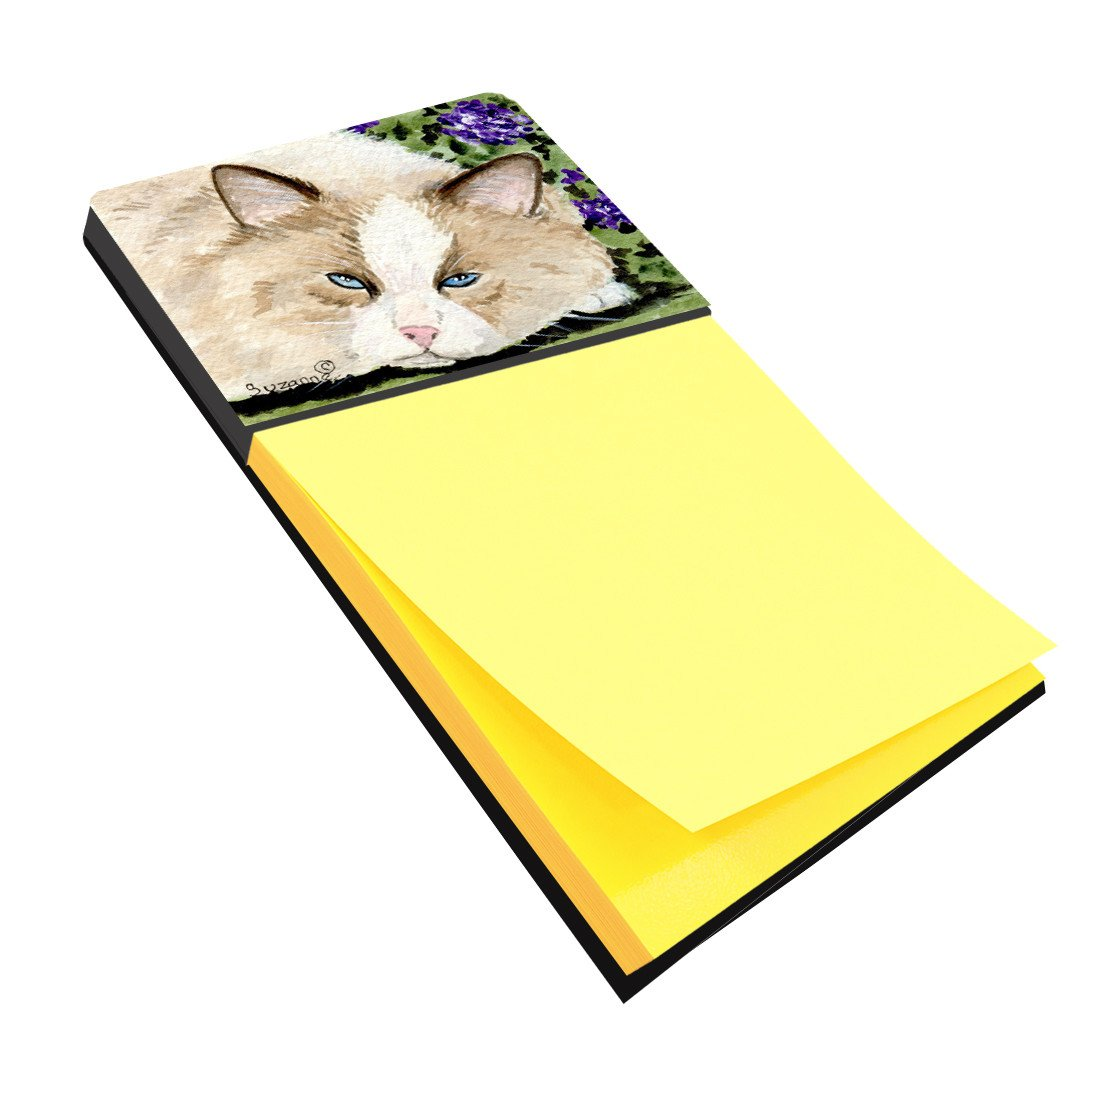 Cat Refiillable Sticky Note Holder or Postit Note Dispenser SS8825SN by Caroline's Treasures